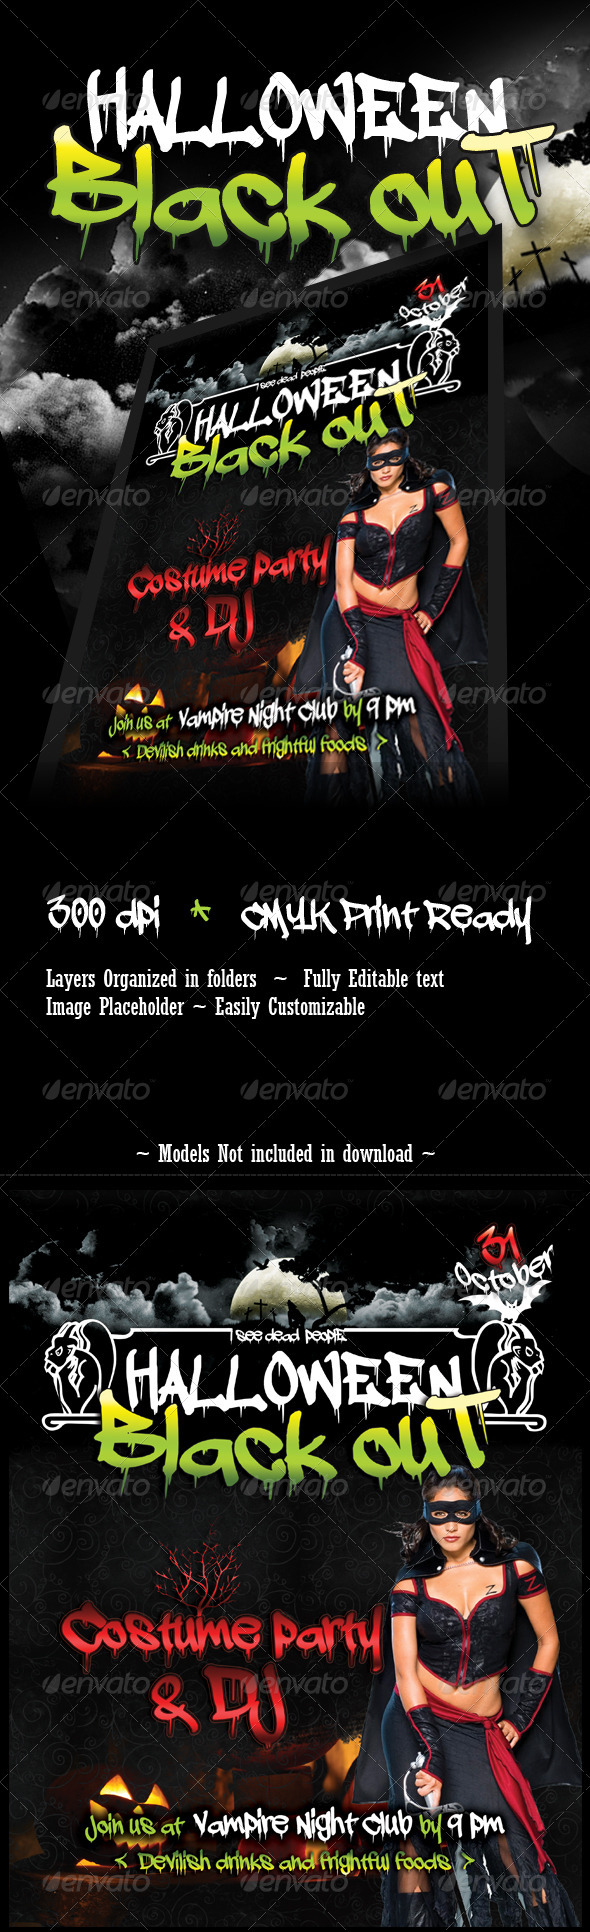 Halloween Blackout Flyer Template